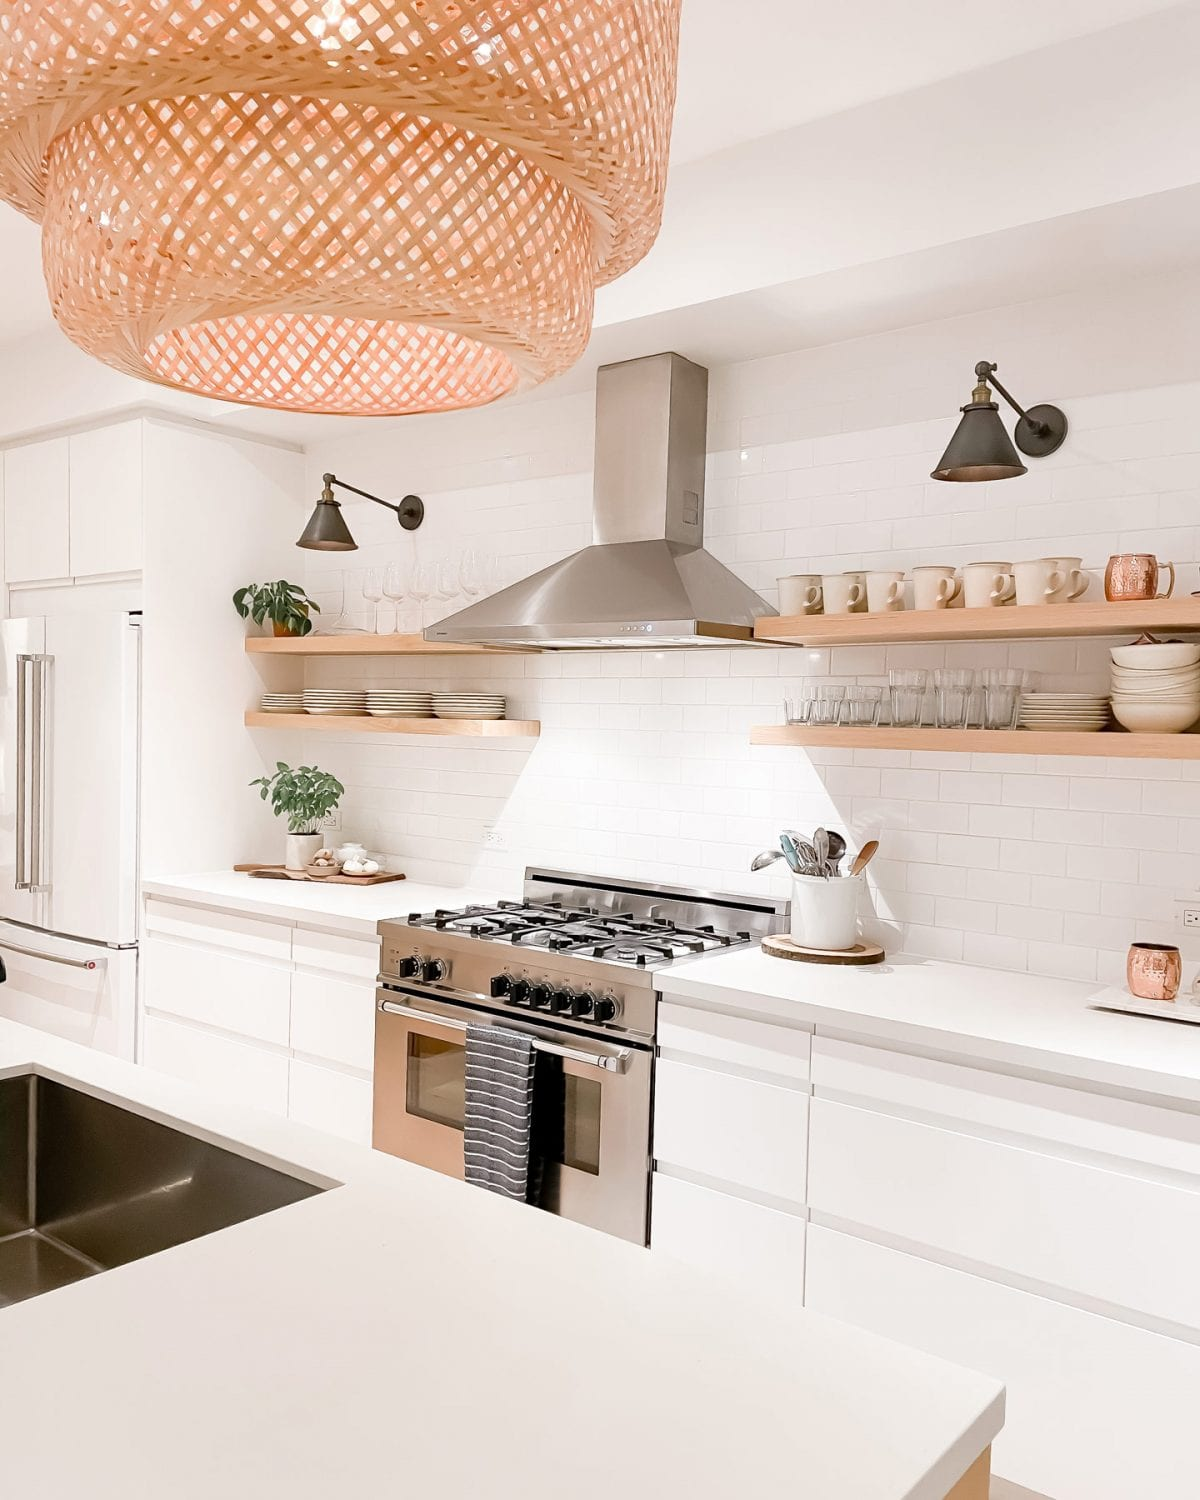 Beautiful renovated kitchen with white counter and wood accents. For more visit yesmissy.com